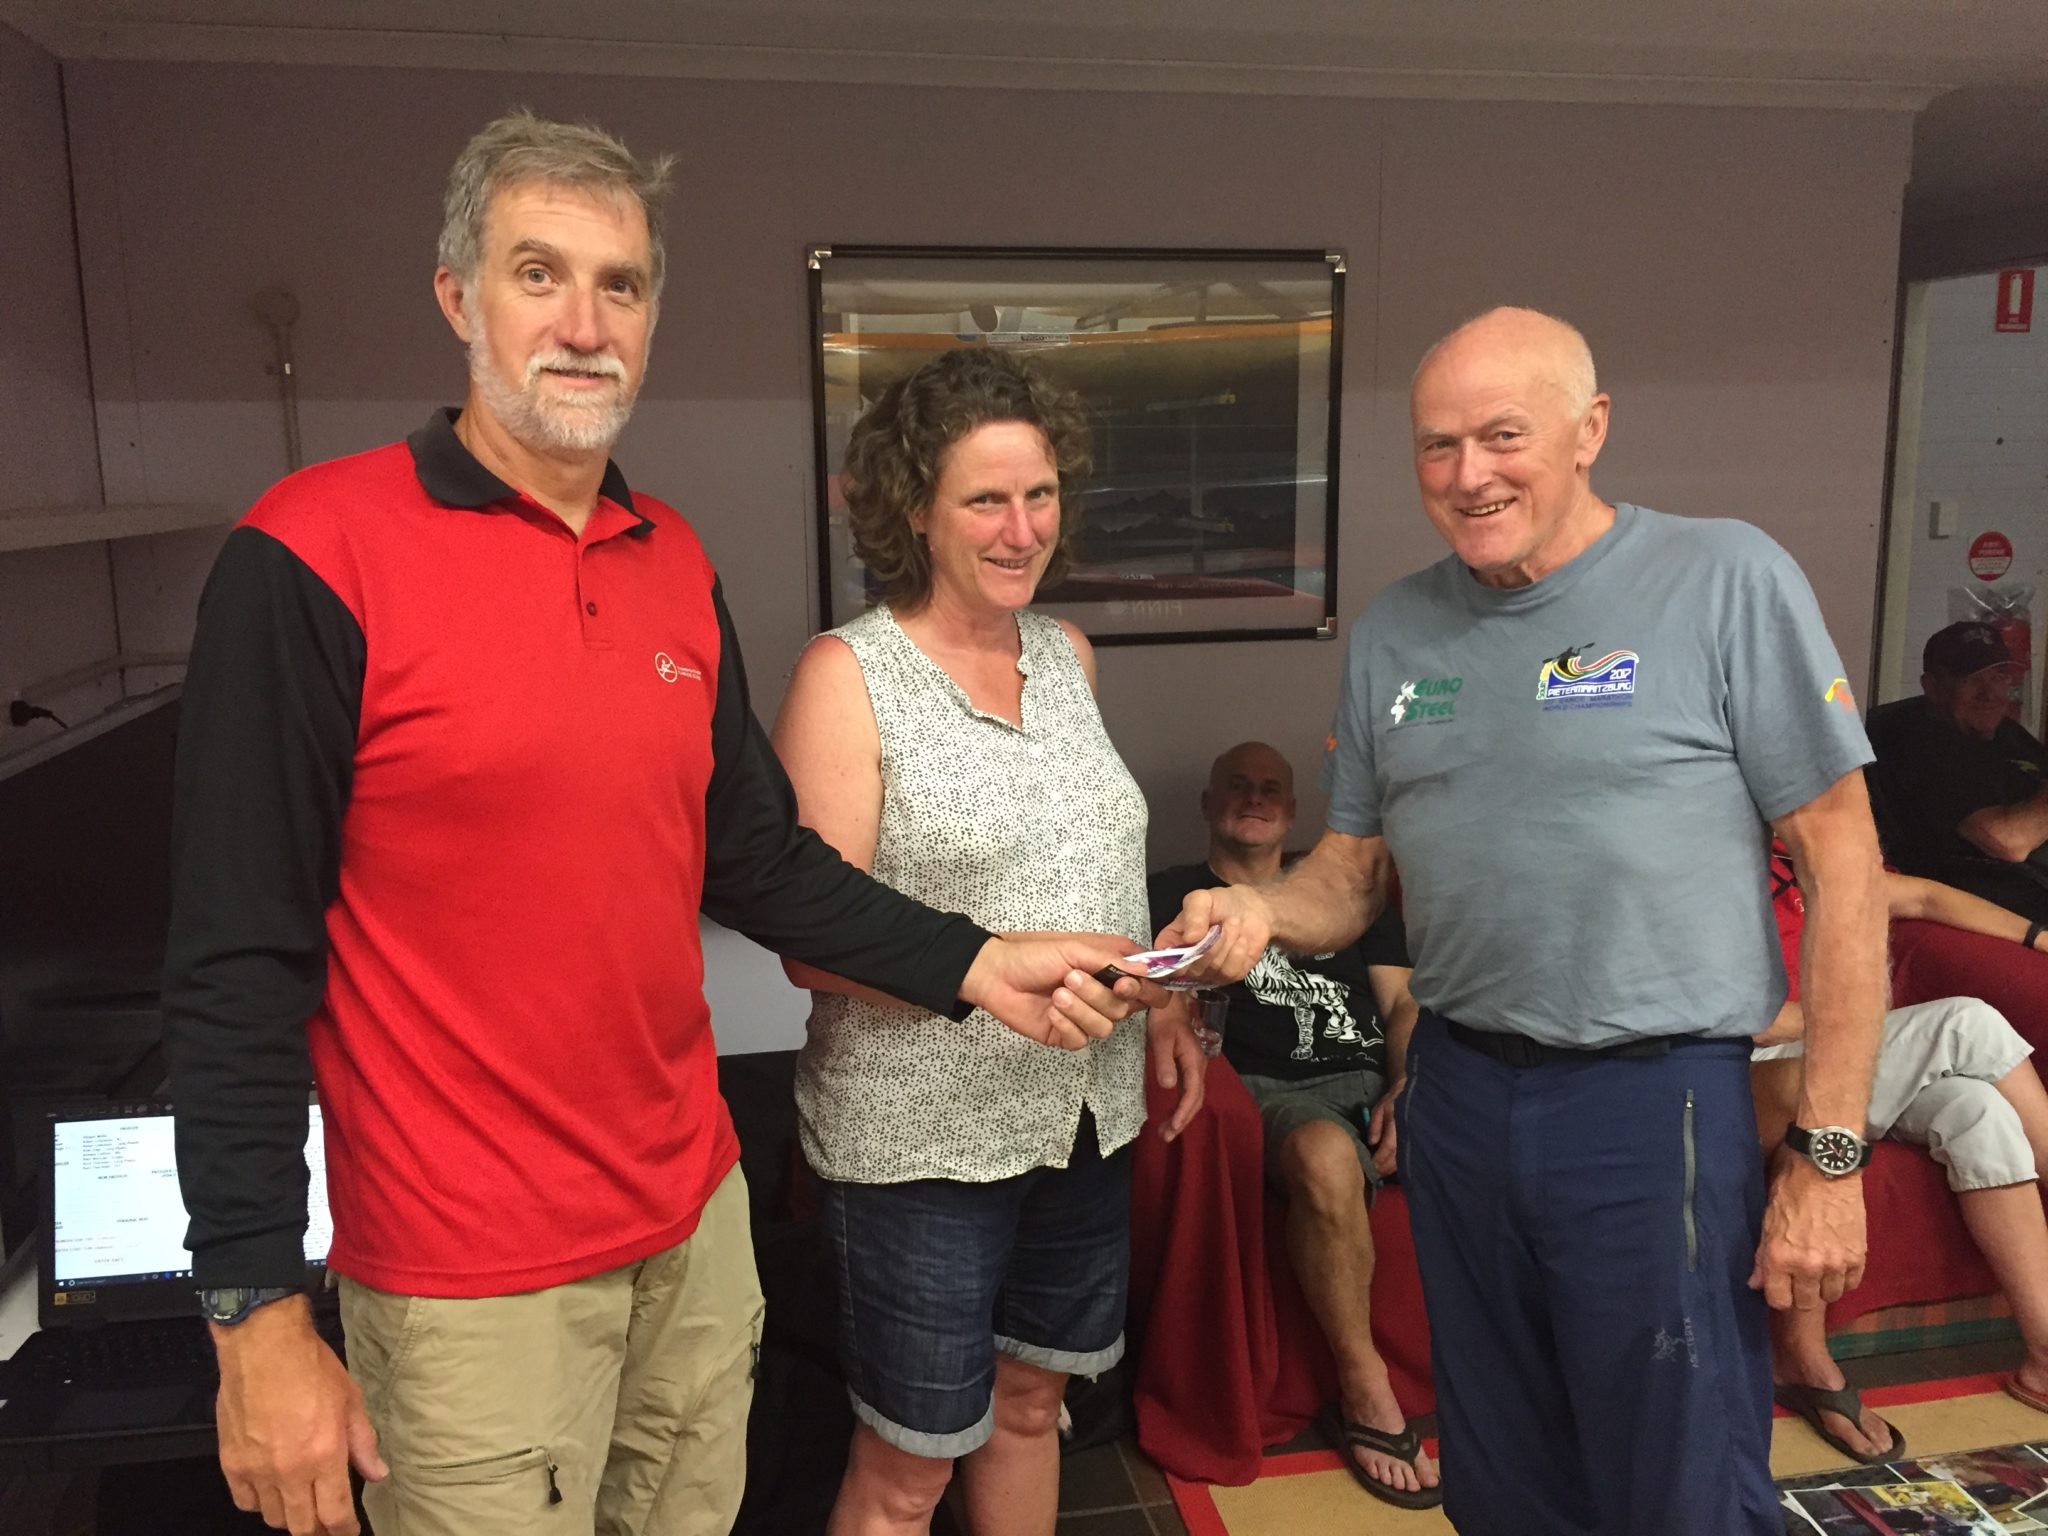 Tues 7th November 2017 : International guest paddler Svenning Jorgenson presenting Steve and Cindy Coward with a winners movie voucher